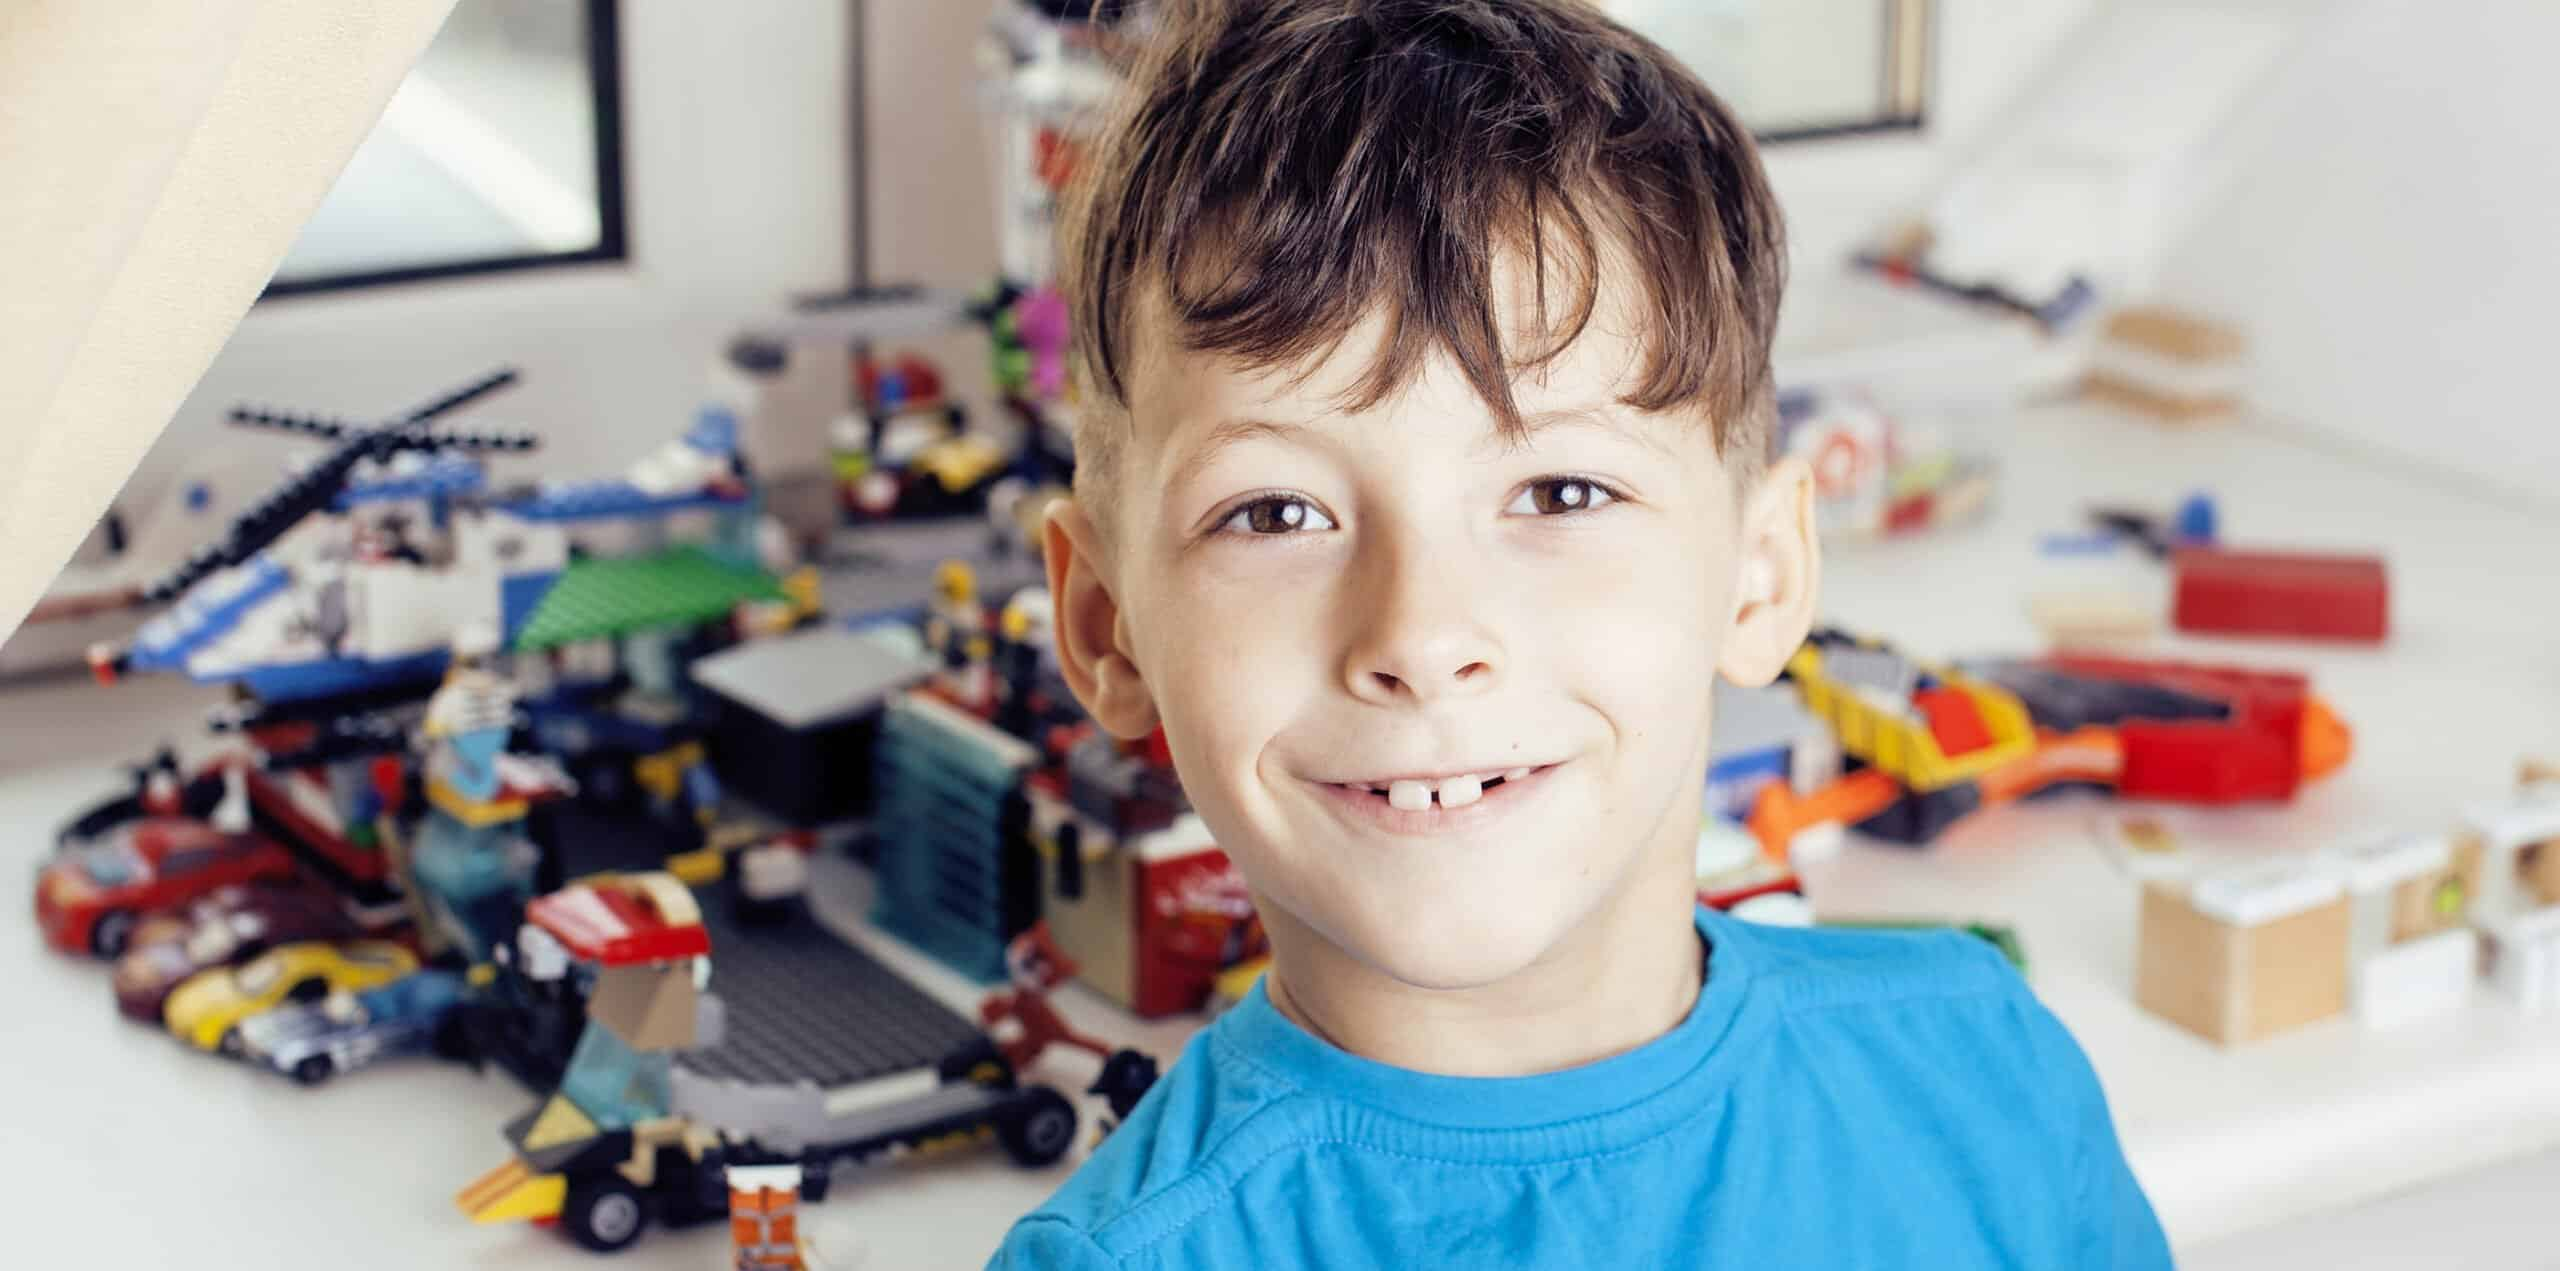 Best Toys And Gift Ideas For 9 Year Old Boys 2021 Littleonemag